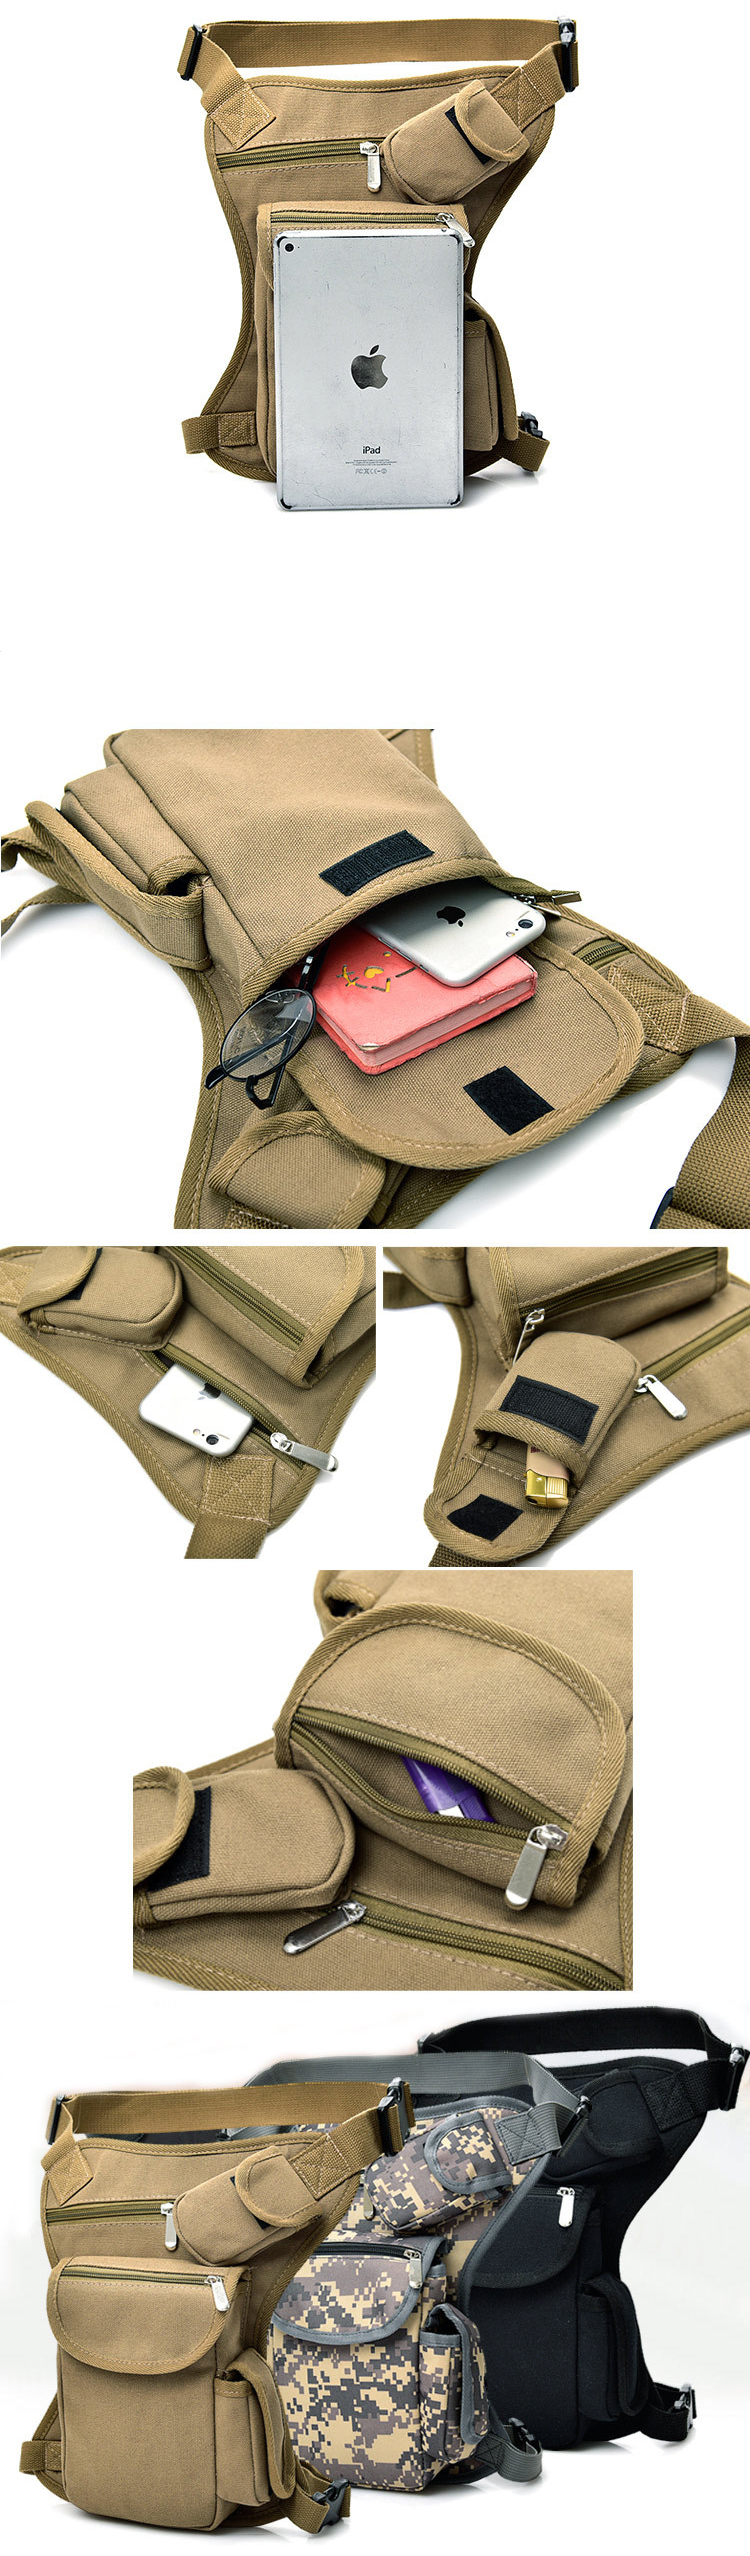 2020 Military Thigh Hip Outdoor Fanny Pack  Drop Motorcycle Bike Tool Pouch Detachable Bottle Holder Tactical Waist Leg Bag